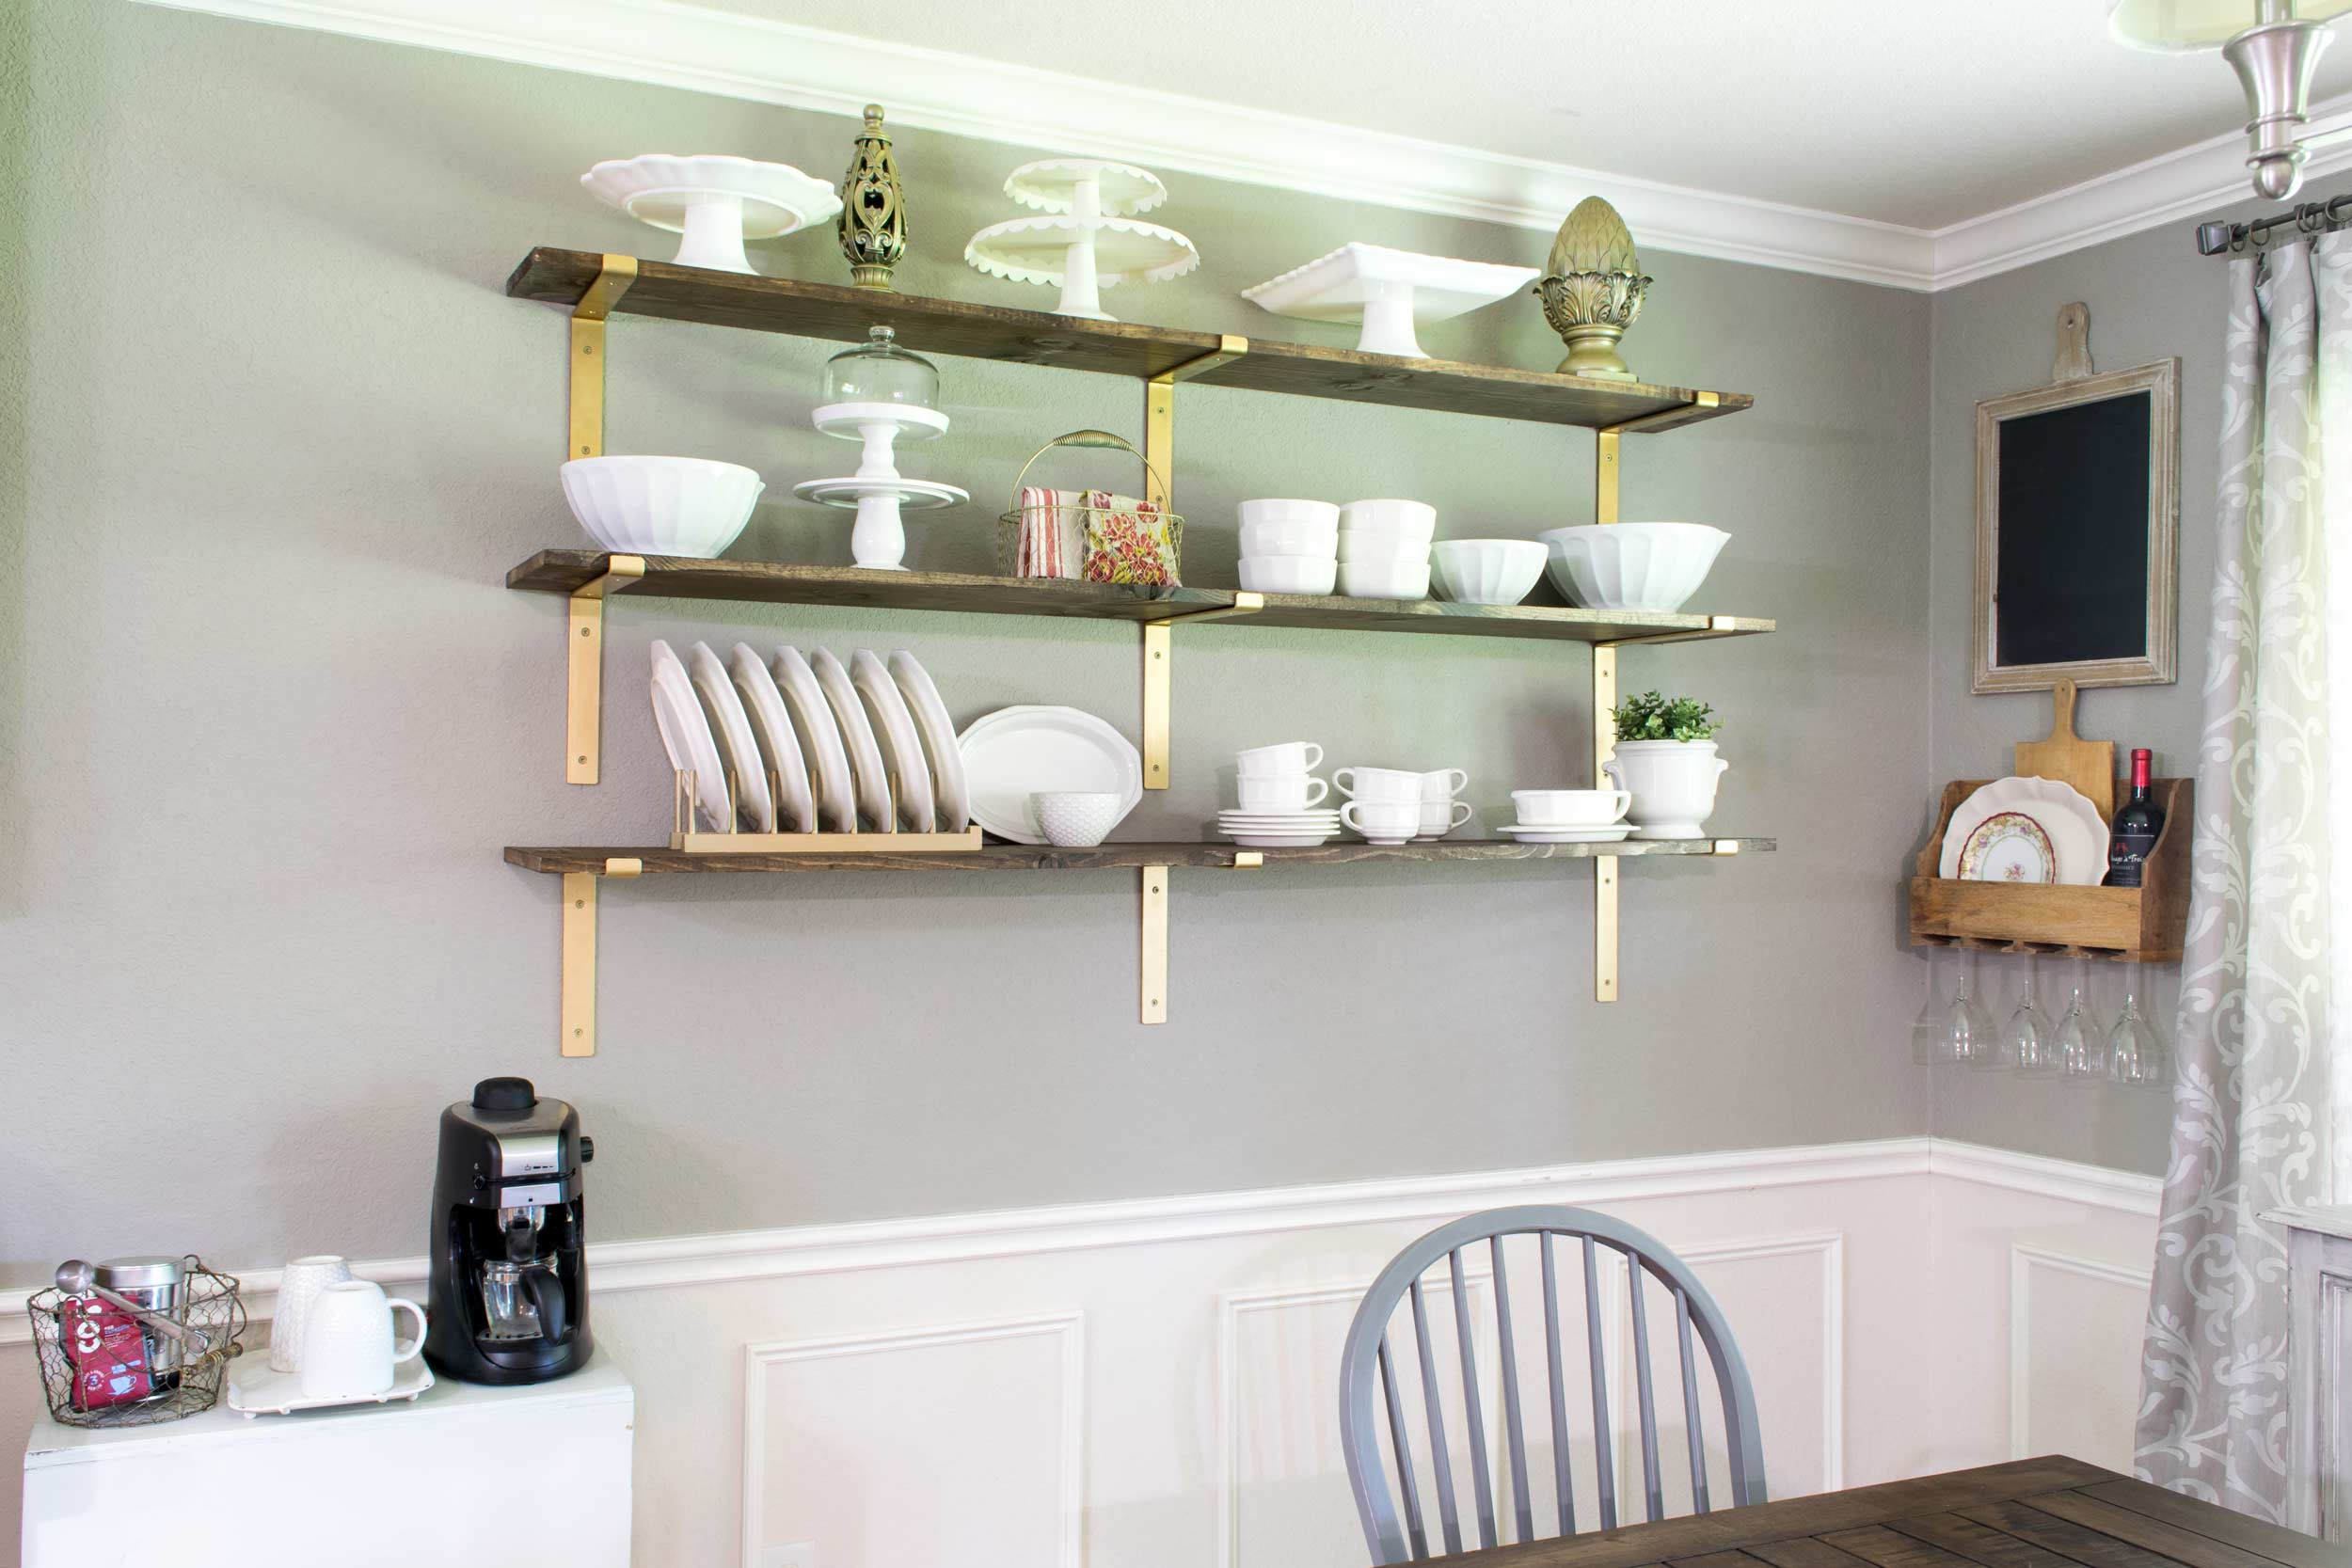 Easy storage hacks perfect for creating a perfectly organized home!